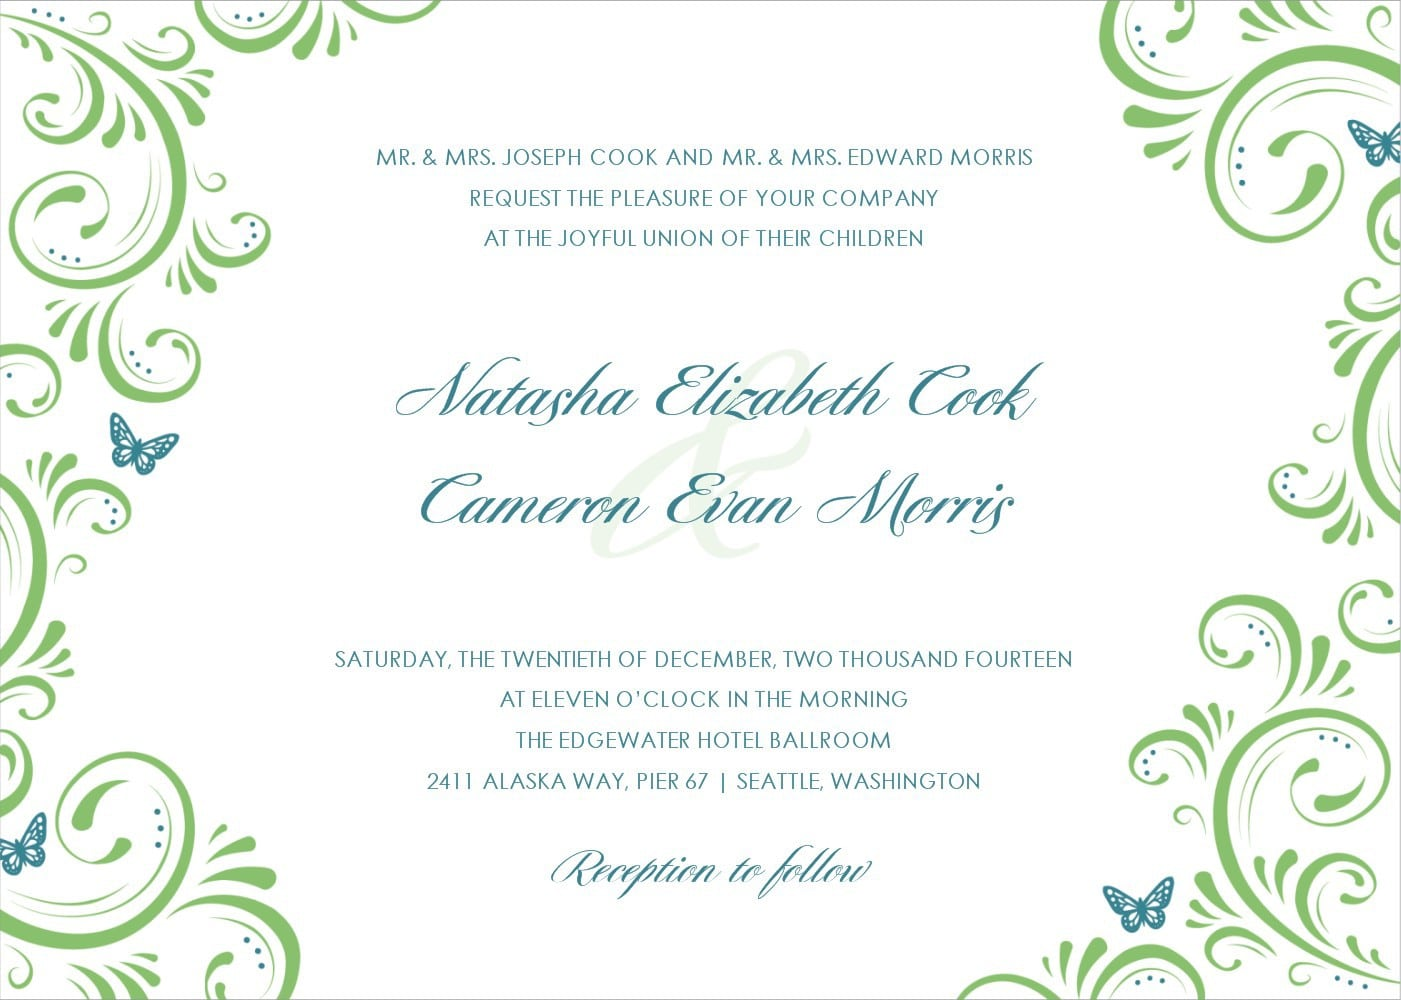 invitation templates – Invitation Card Design Online Free